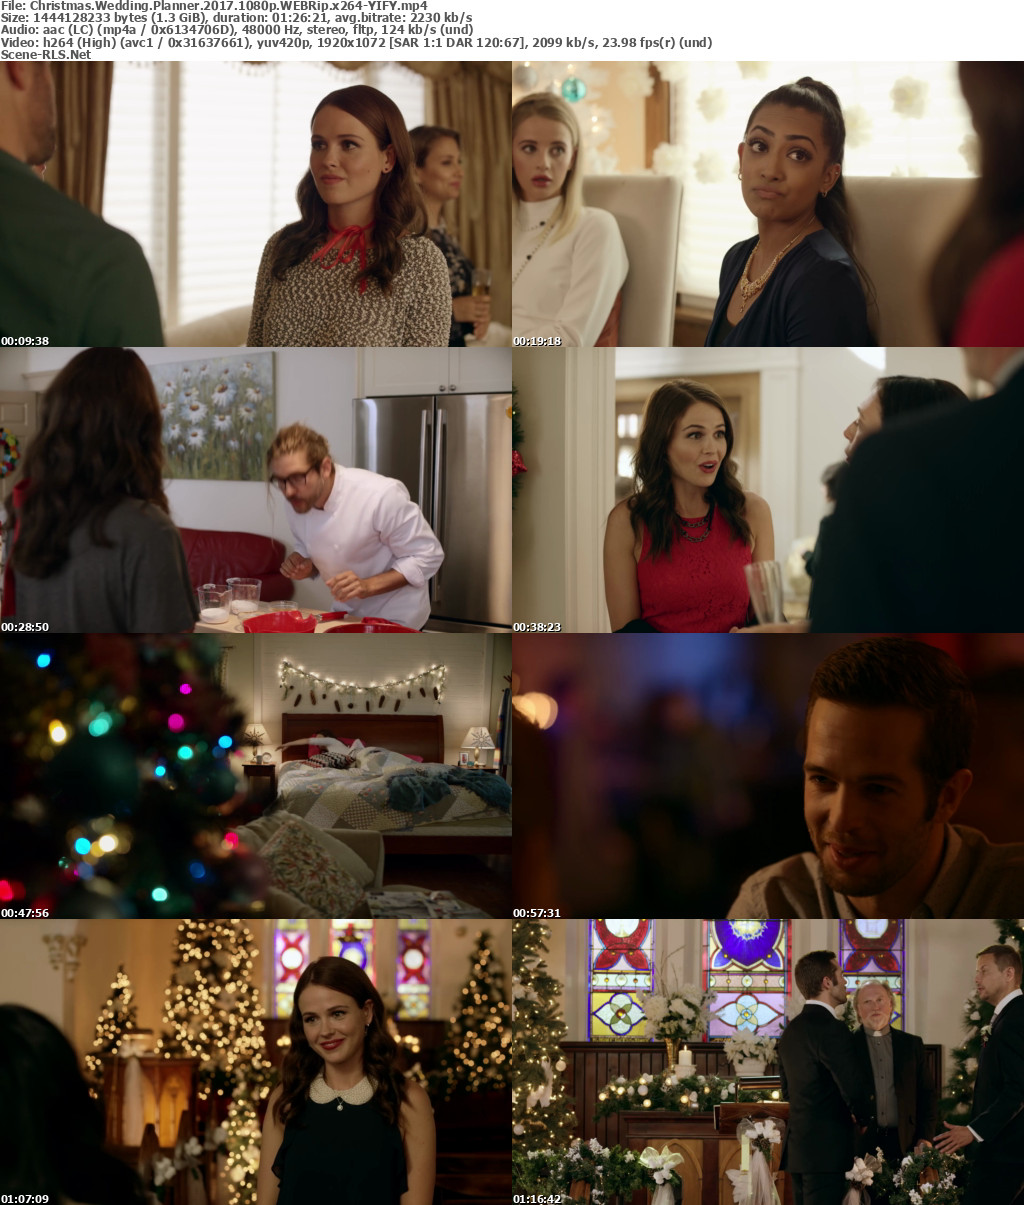 Christmas Wedding Planner.Christmas Wedding Planner 2017 1080p Webrip X264 Yify